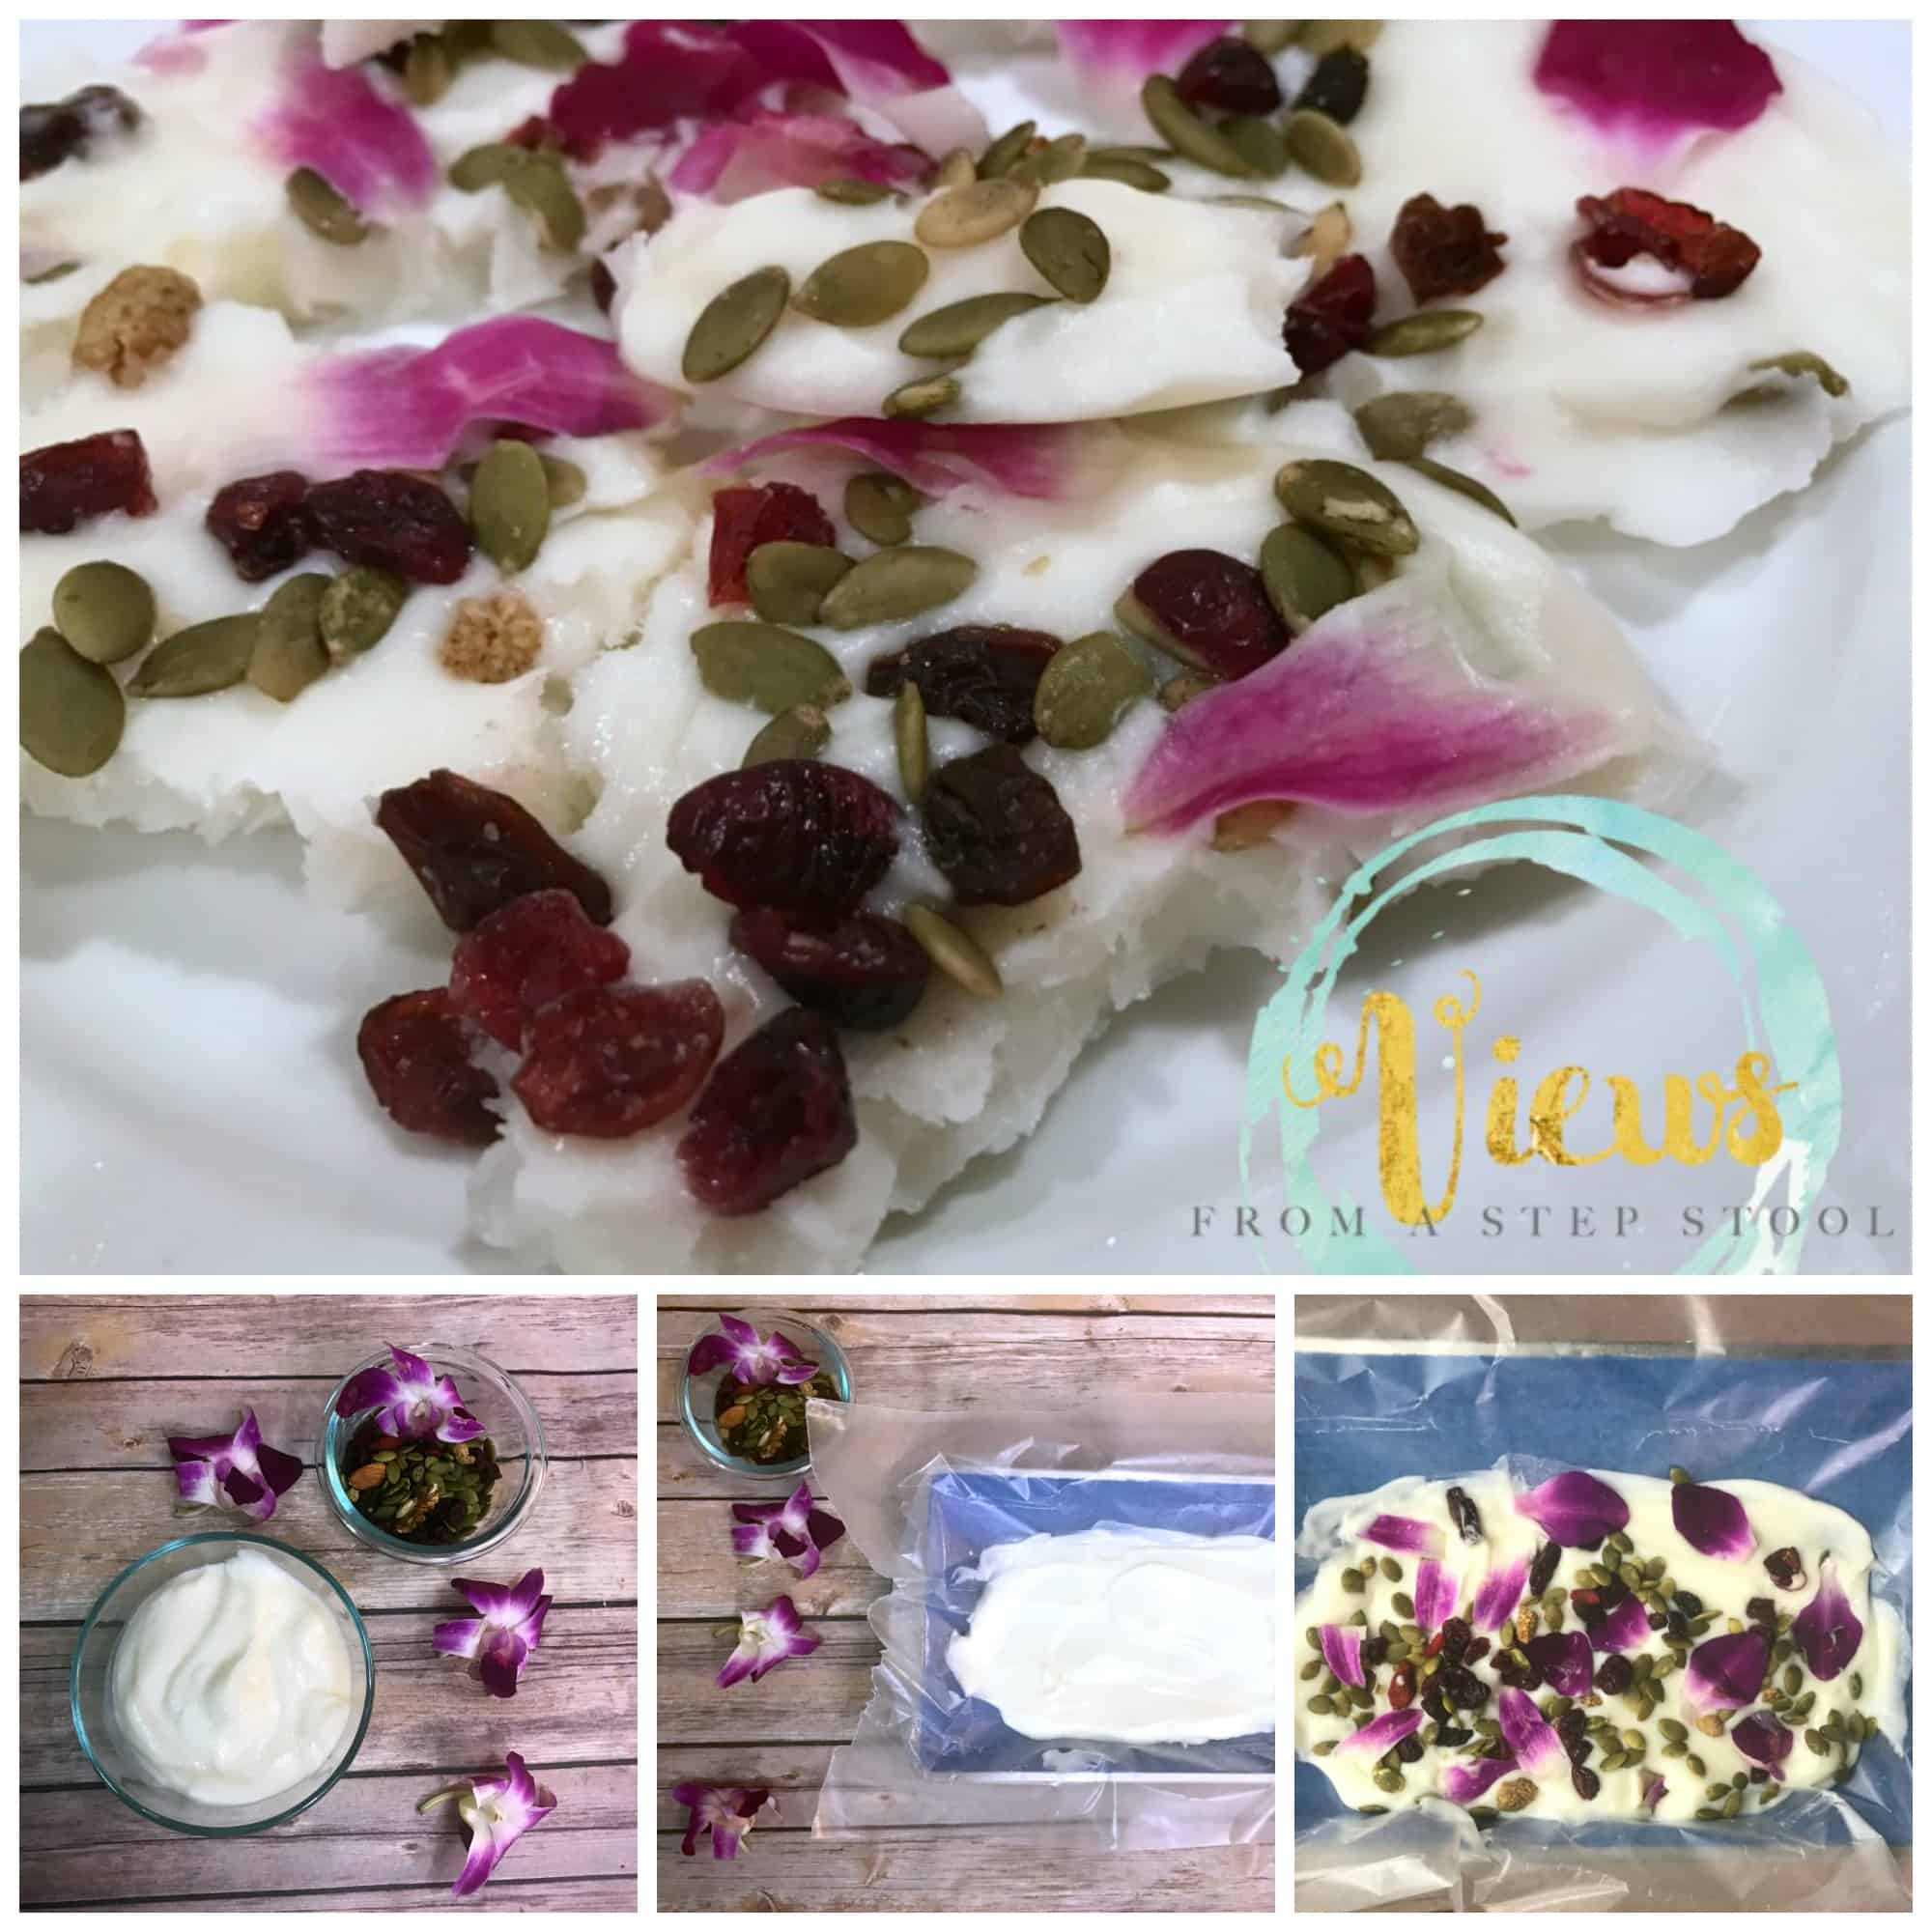 My kids LOVED making this edible flower bark! Not only was it tasty (and healthy), but there are so many fine motor and math skills to work on with kids in the kitchen!